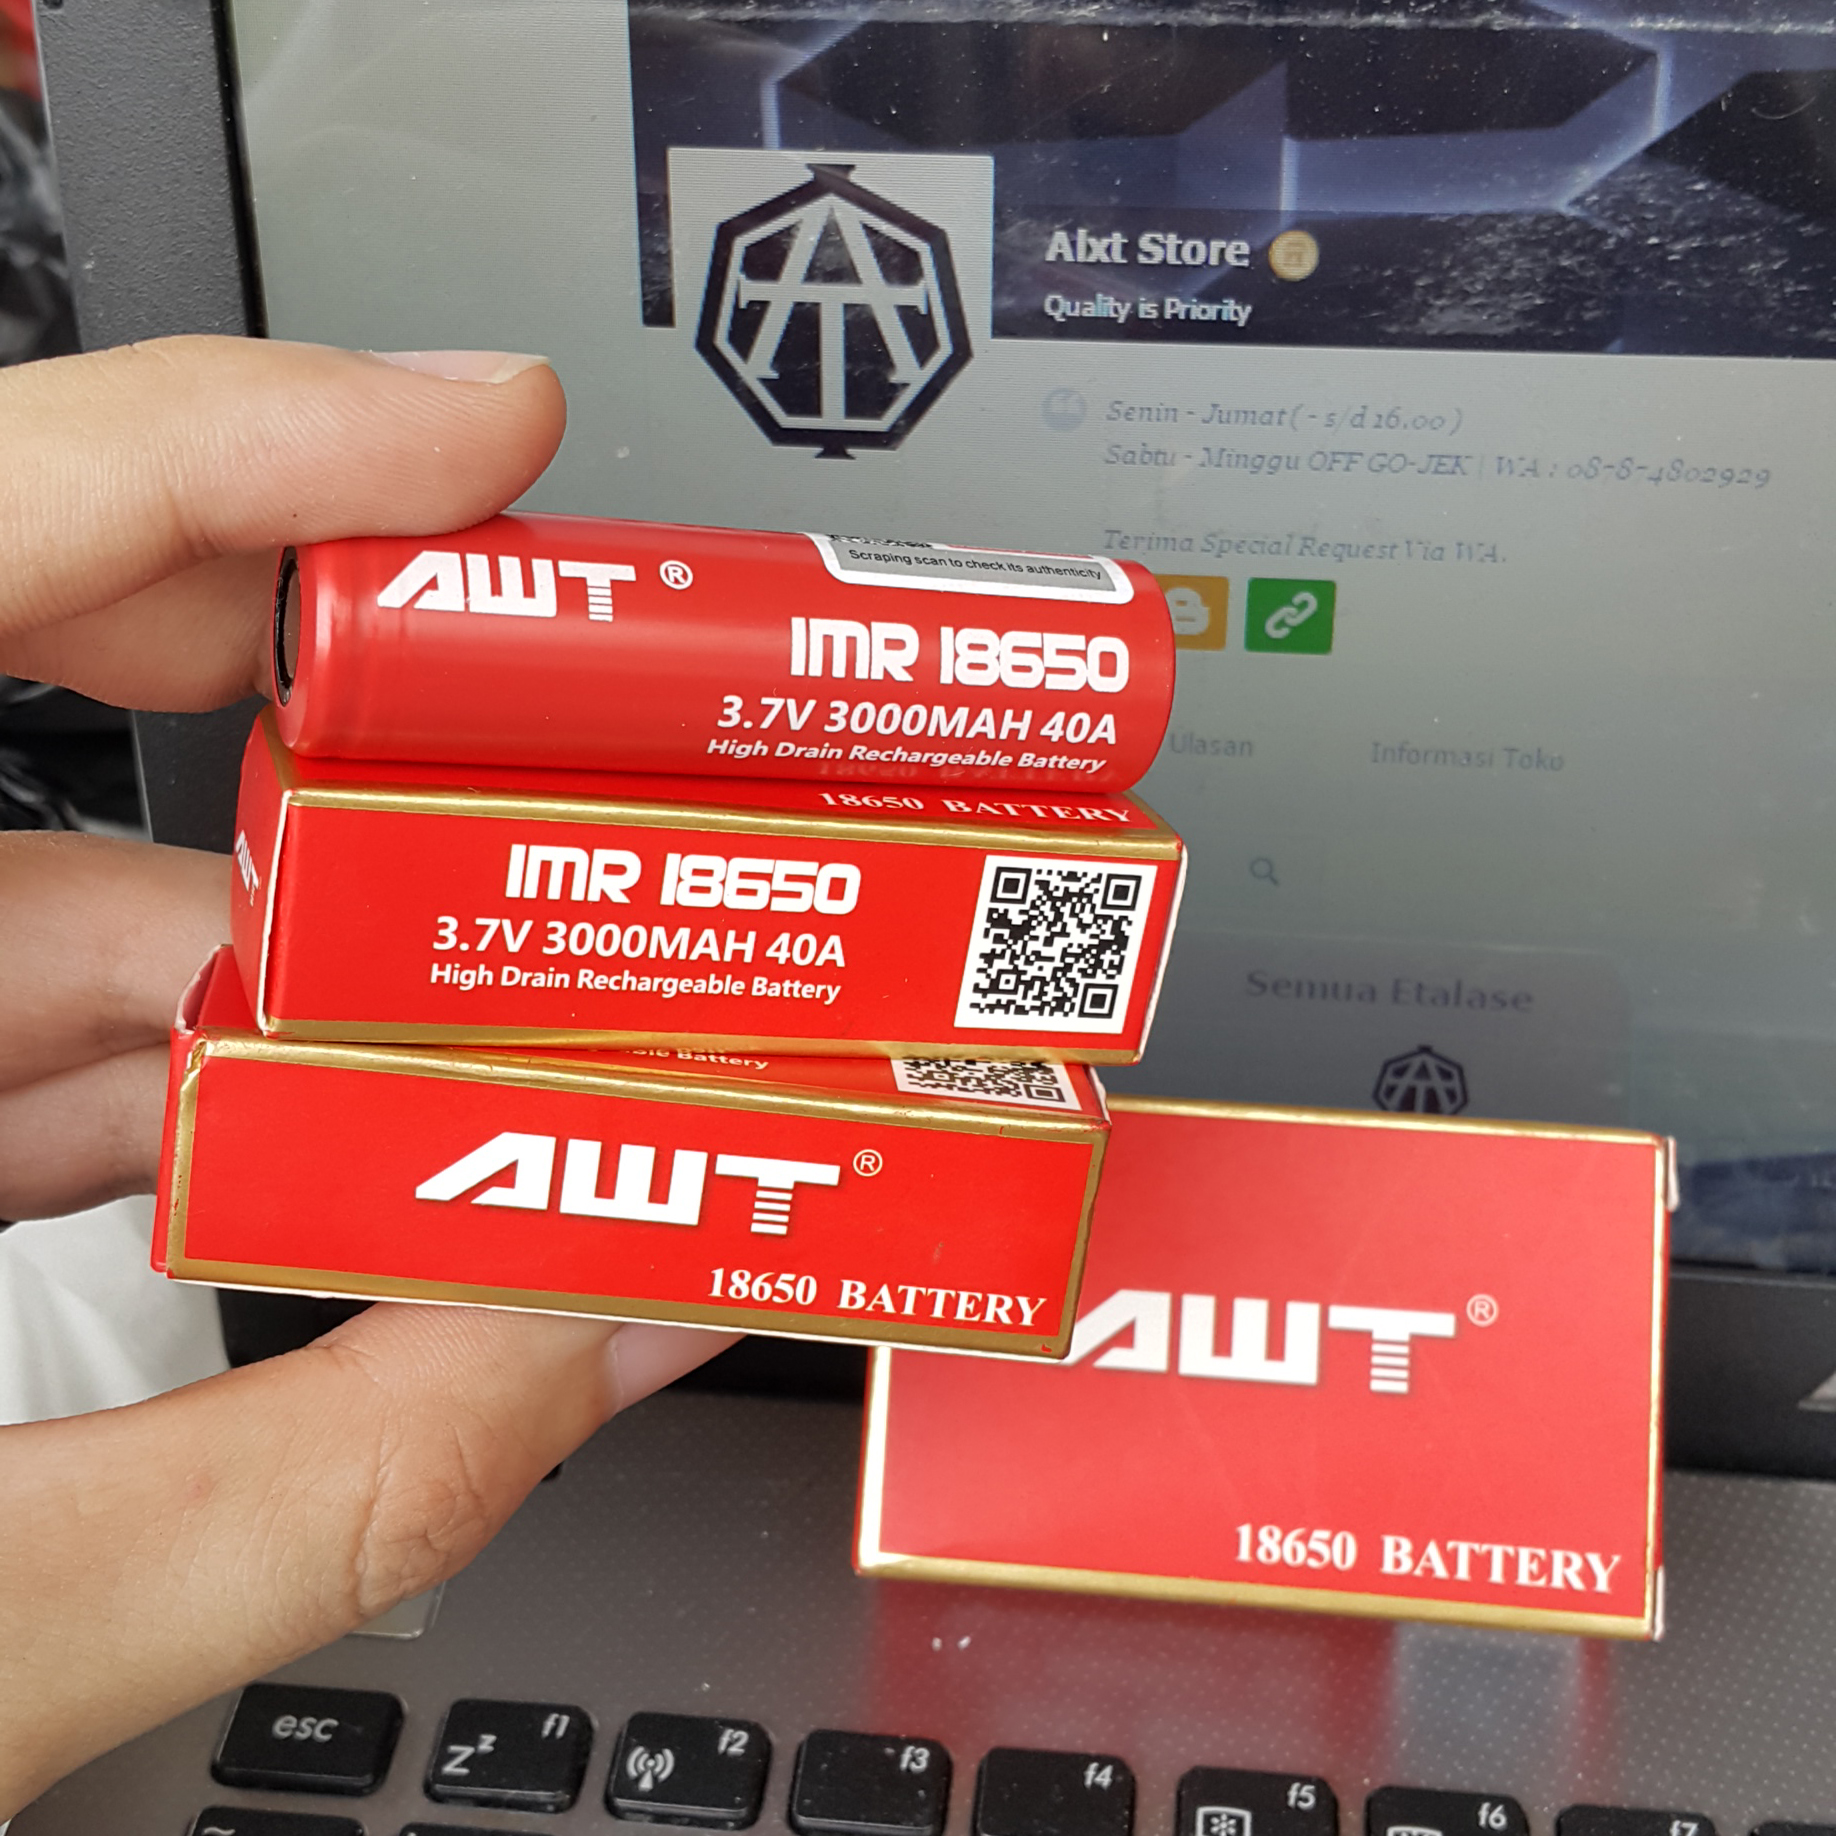 Jual Original Red Awt 18650 3000mah 40a Battery Batre Merah Vape For Authentic Vapor Alxt Store Tokopedia